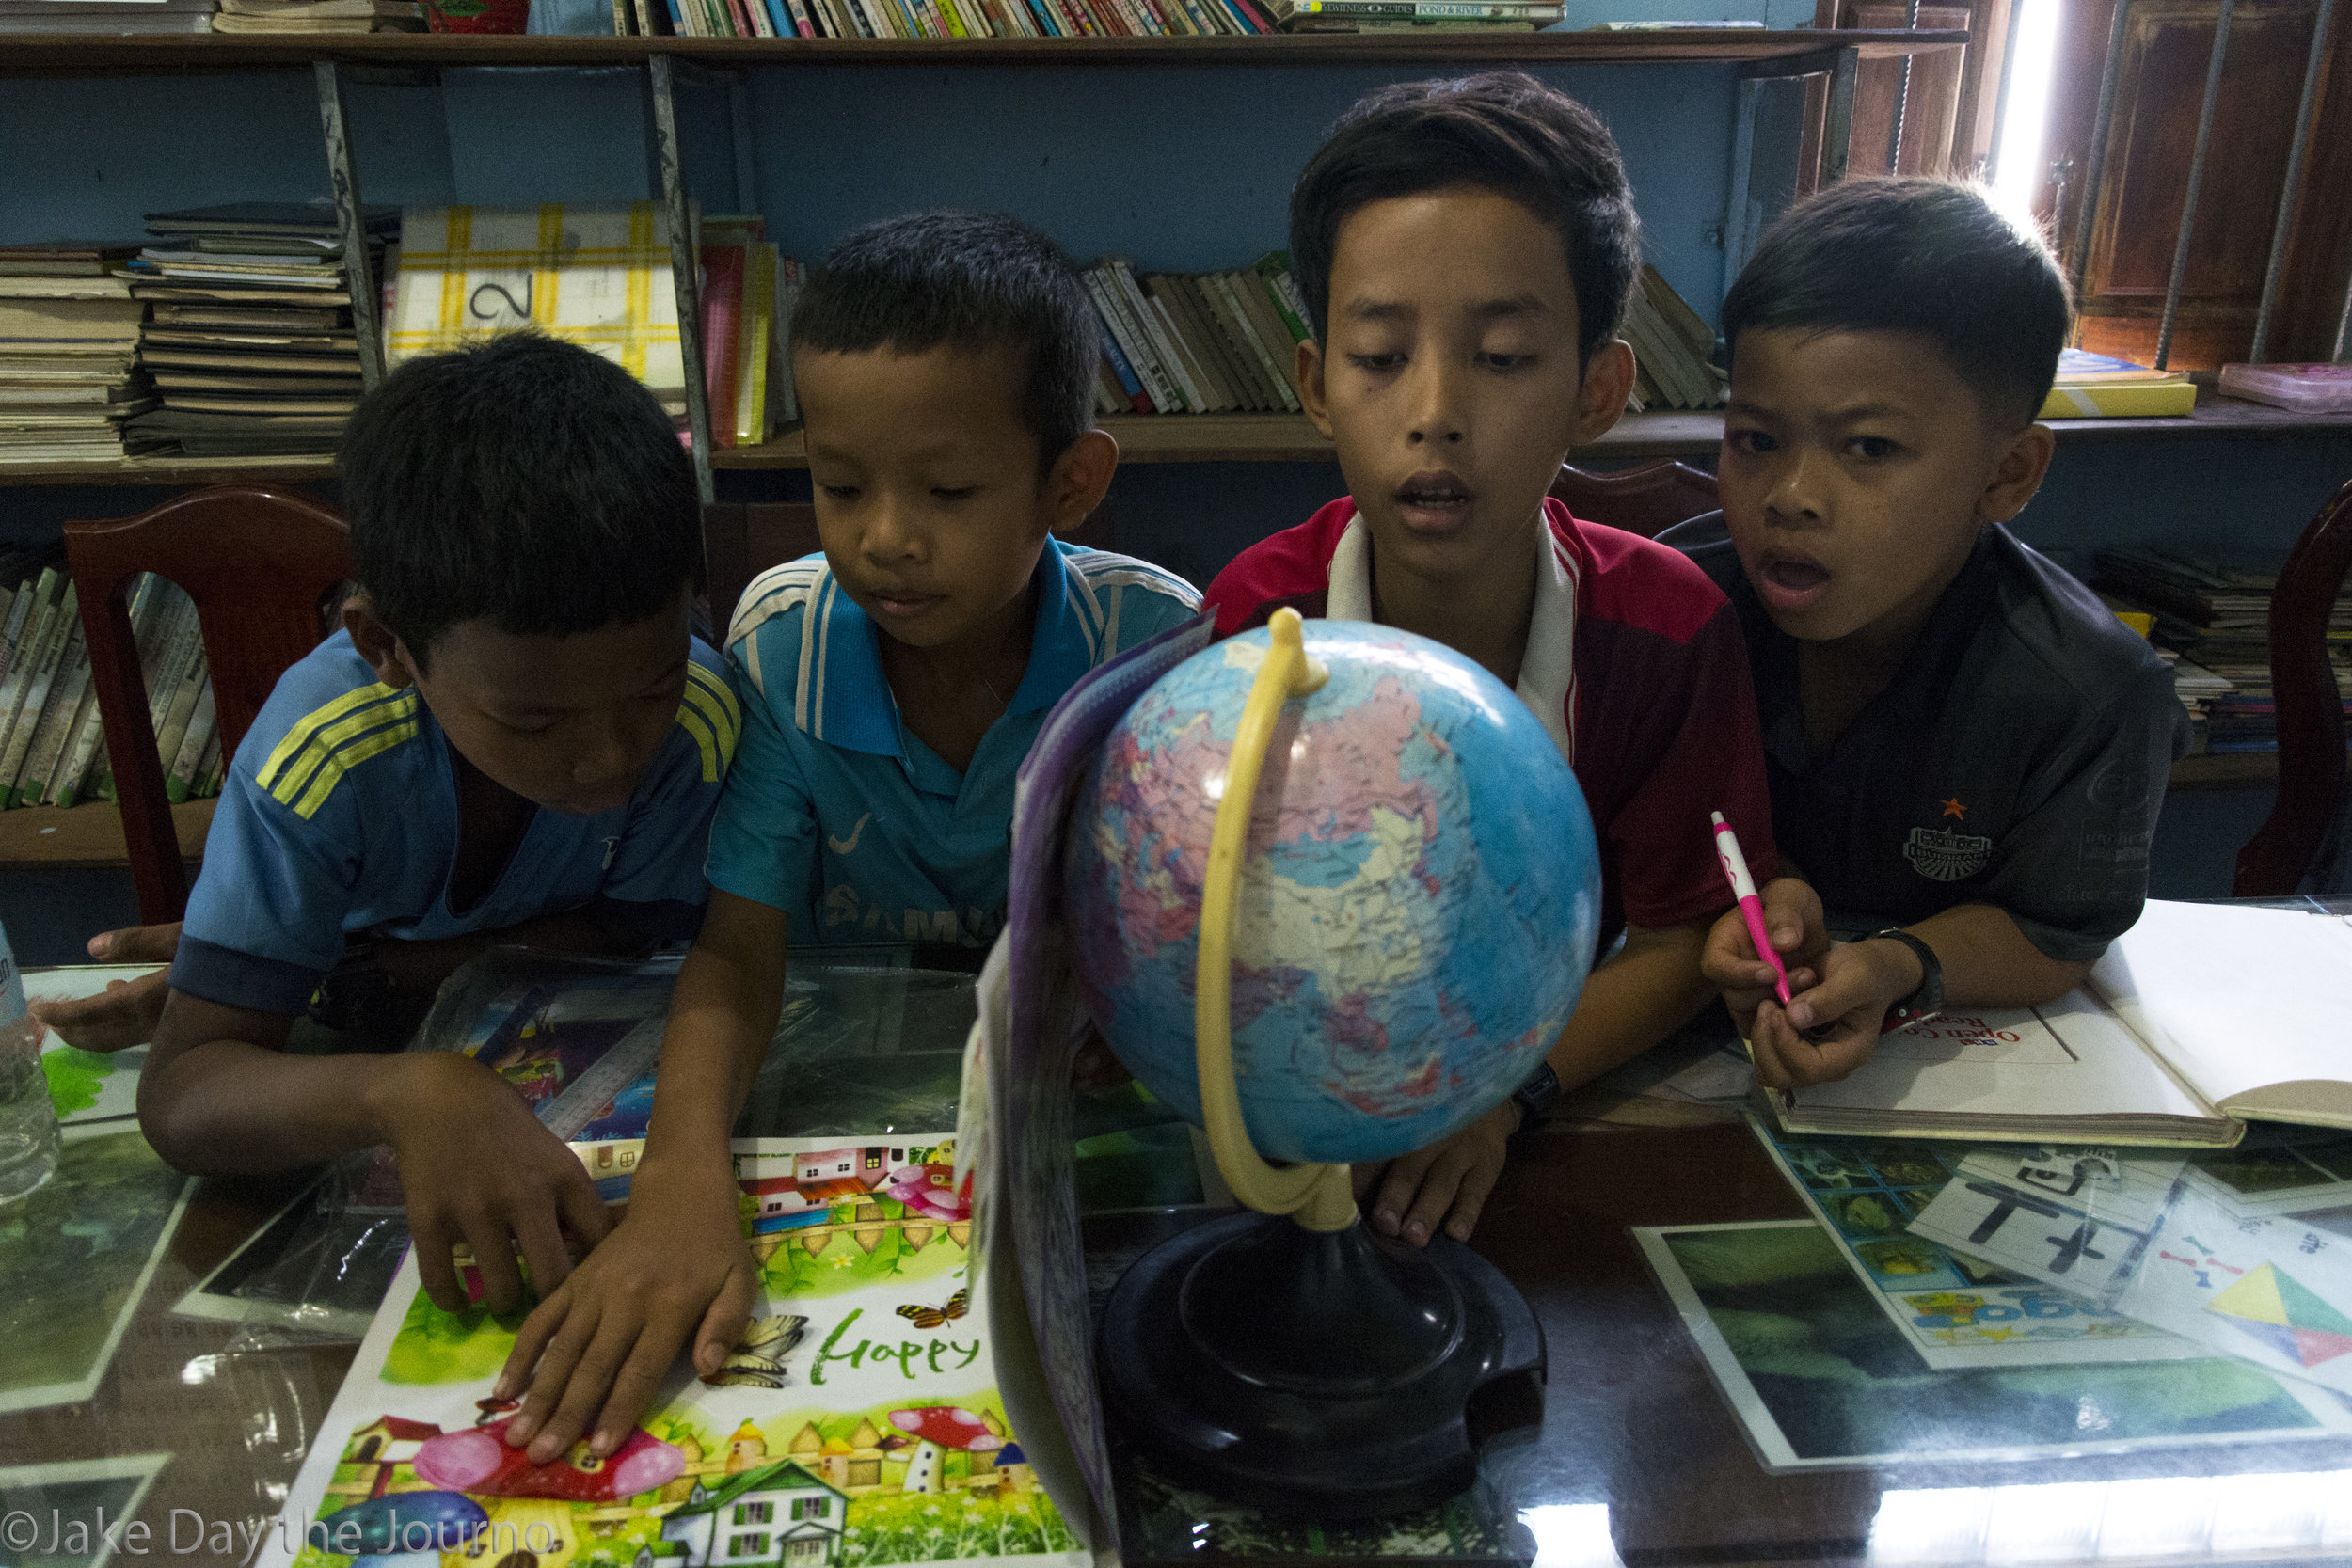 Movmab, 12, Lepeang, 12, Vicheka, 13, and Pheaktra, 12, study a globe in the library at Savong's School, Don Teav Village, on 25/01/18 by Jake Day.